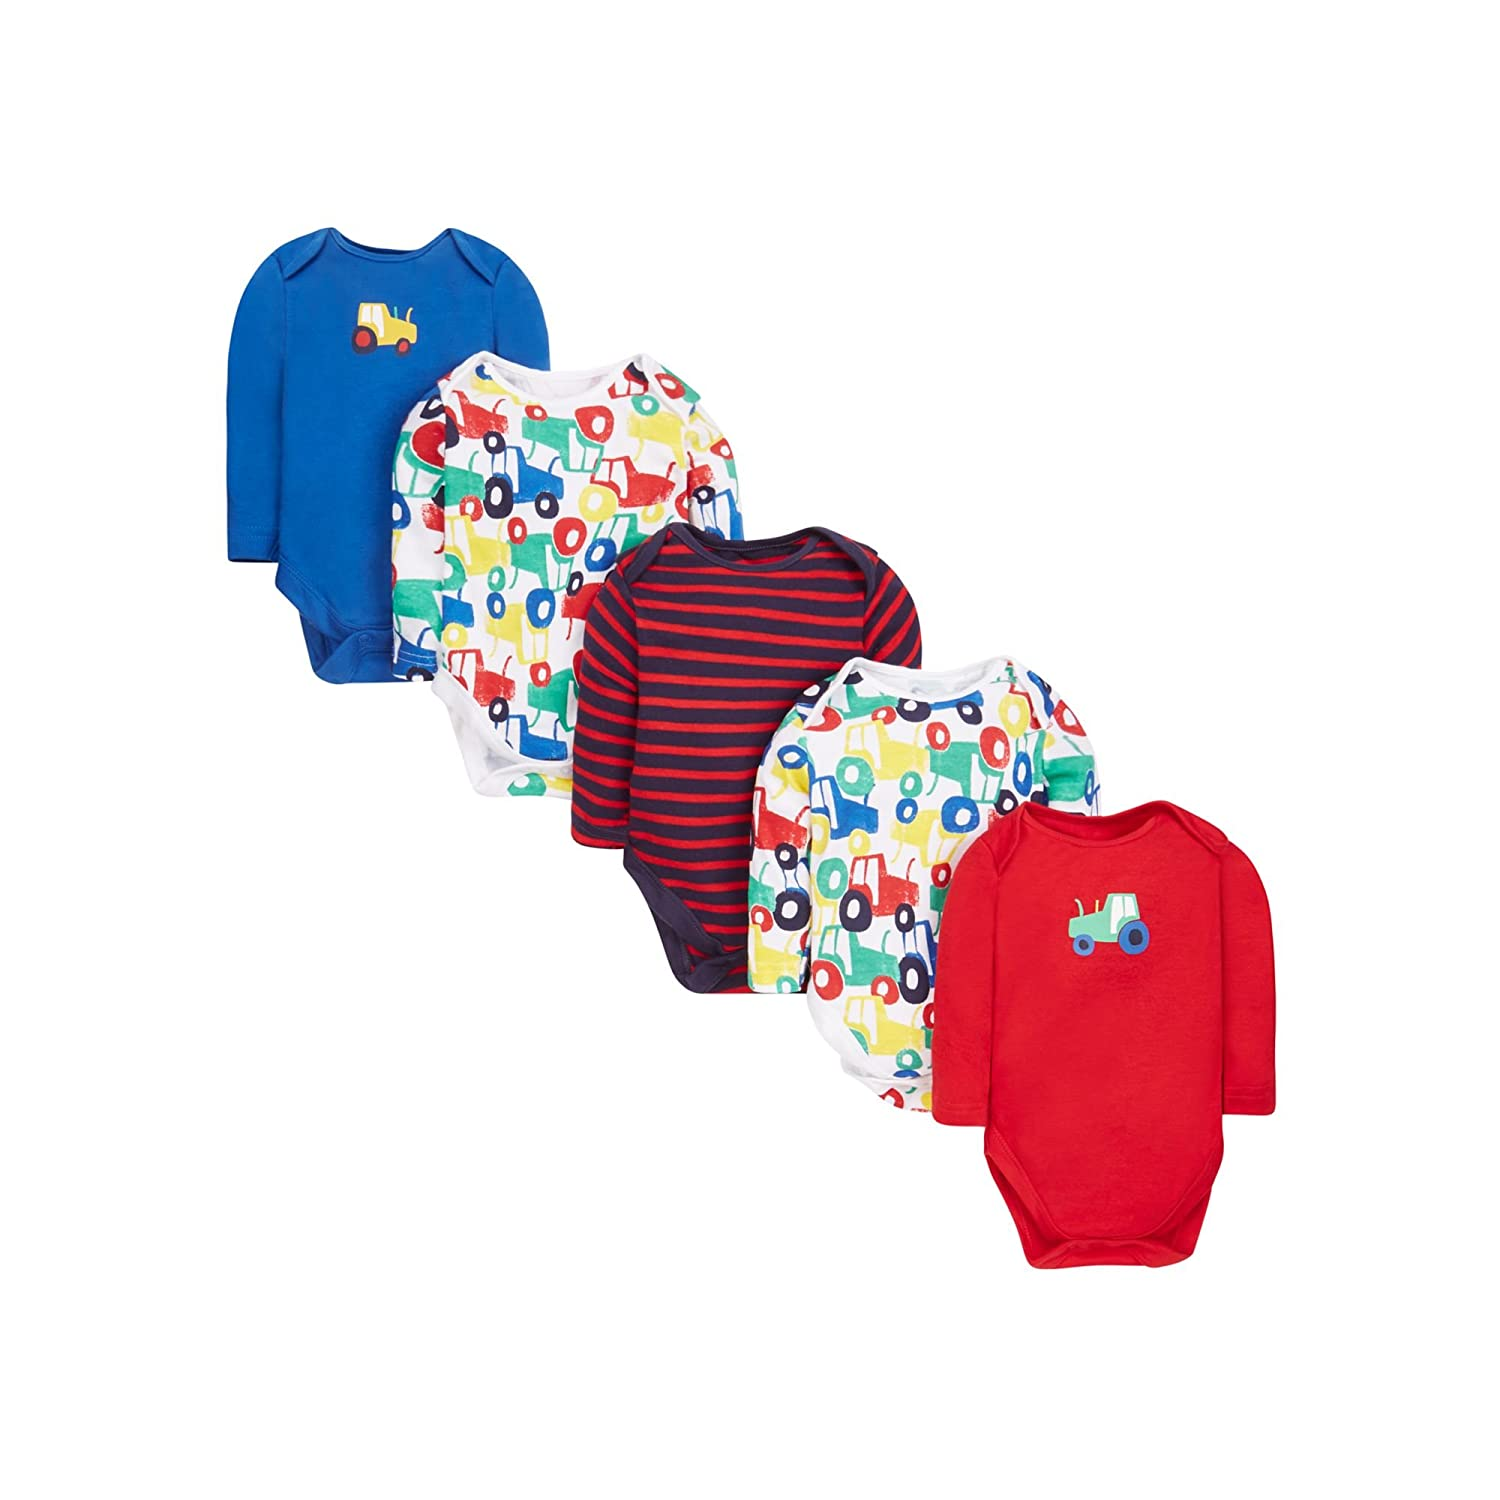 Mothercare Tractor Bodysuits - 5 Pack Multi Up to One Month (Manufacturer Size:56) MC215